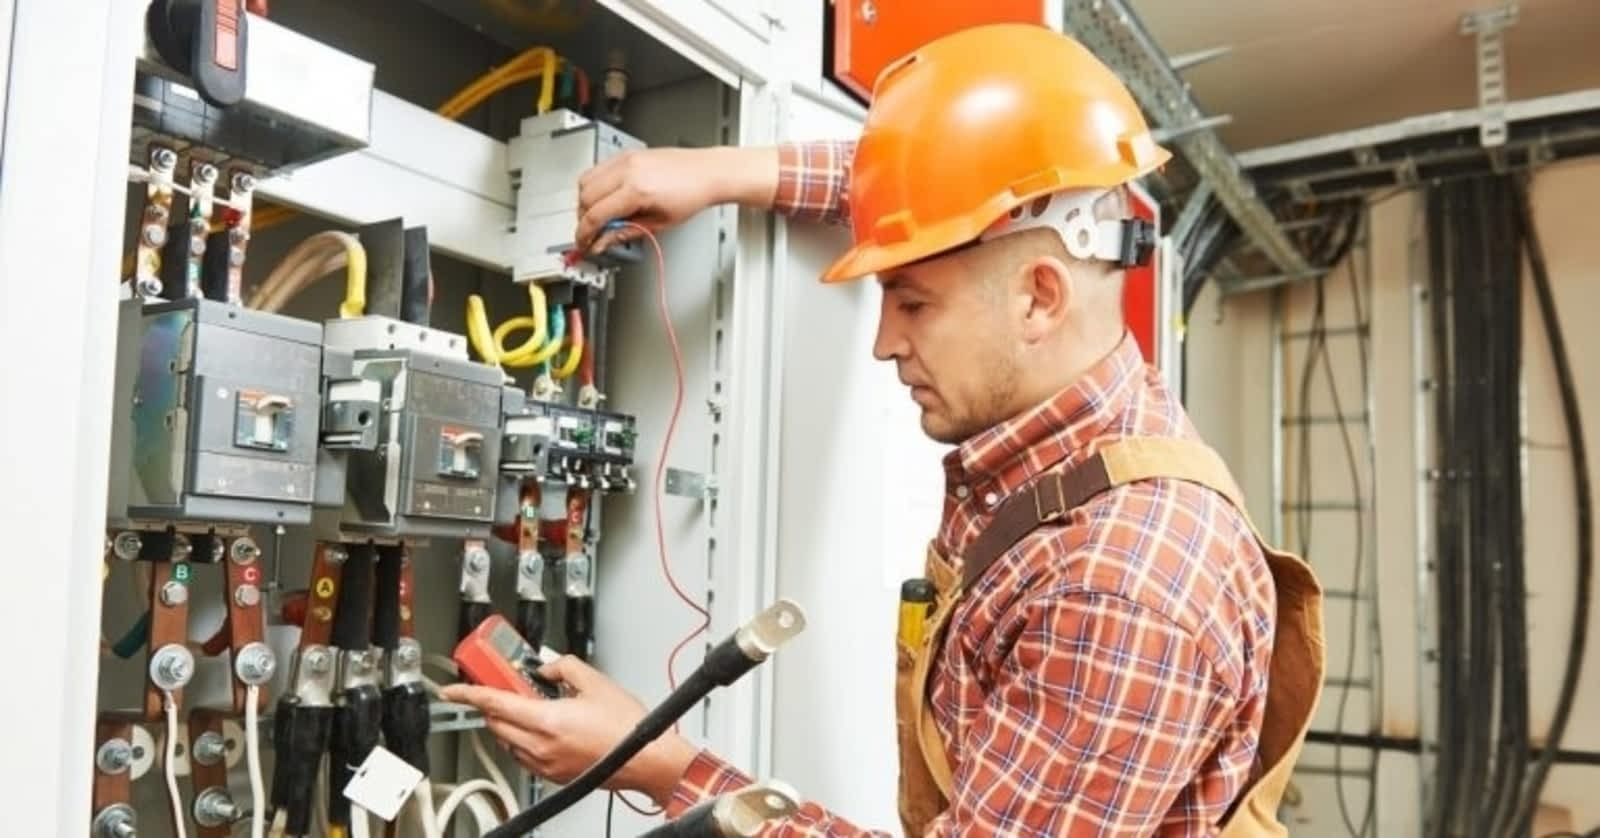 Starting an Electrician Business